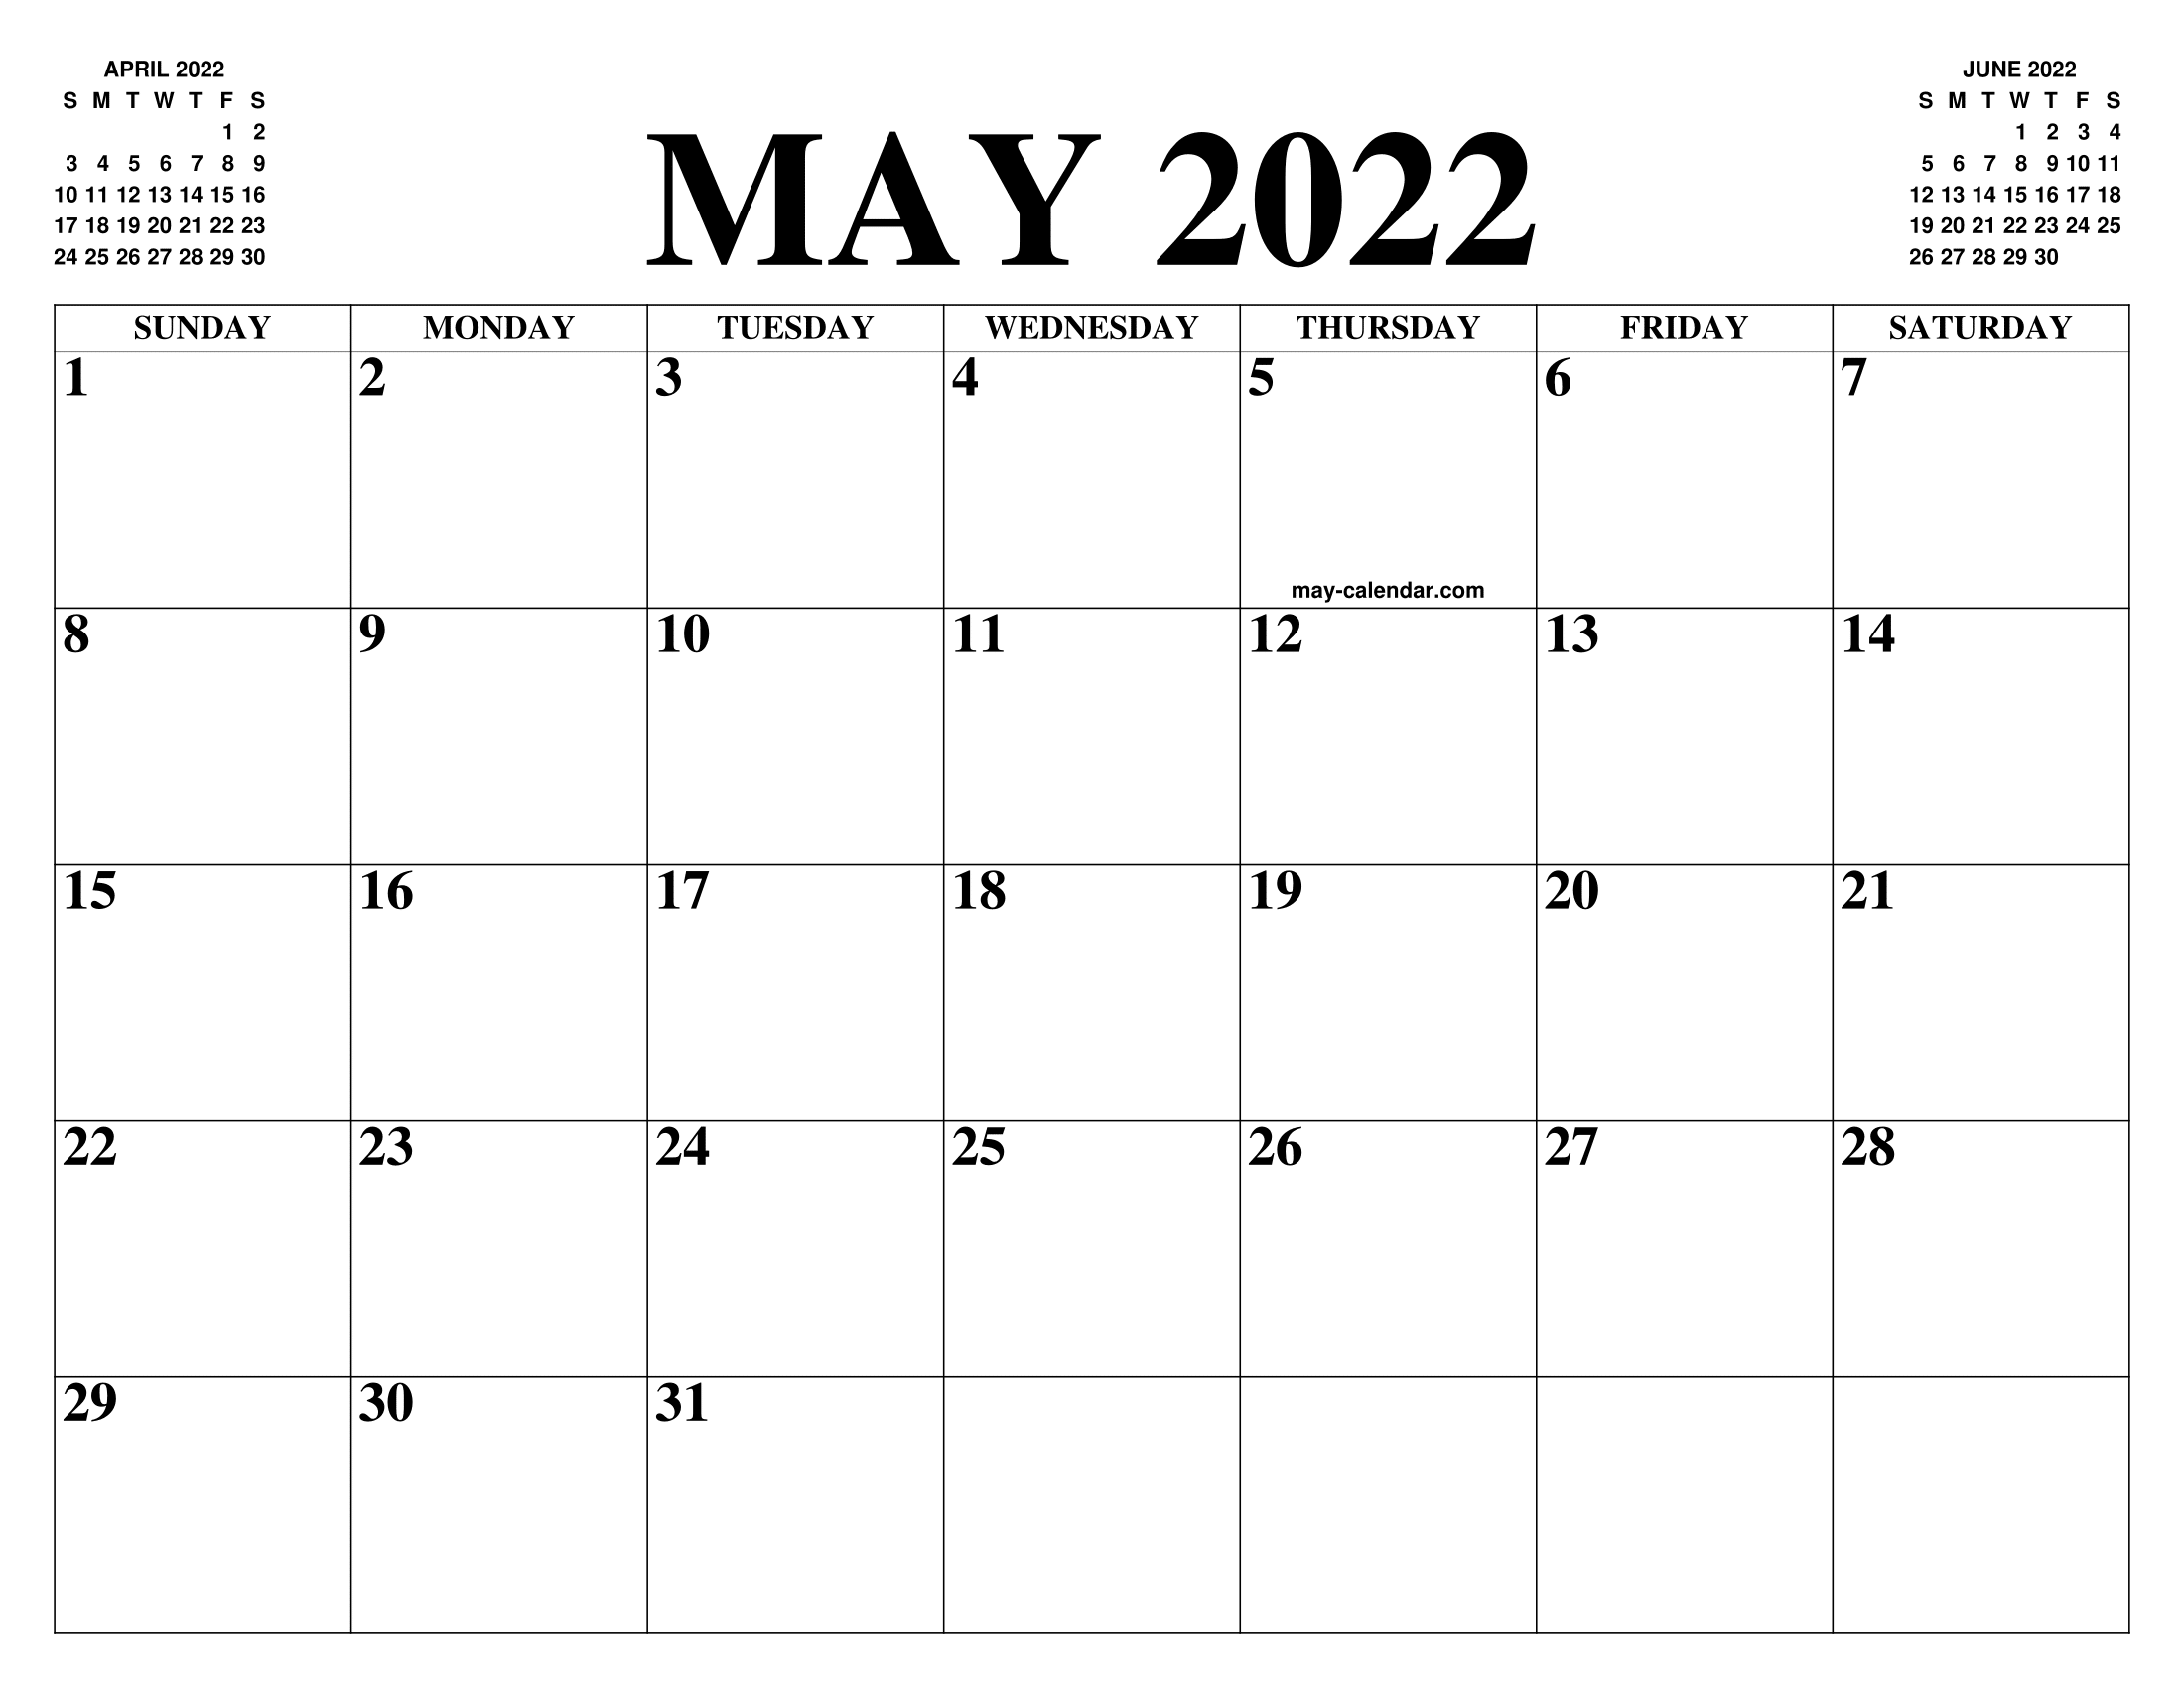 2022 May Calendar.May 2022 Calendar Of The Month Free Printable May Calendar Of The Year Agenda